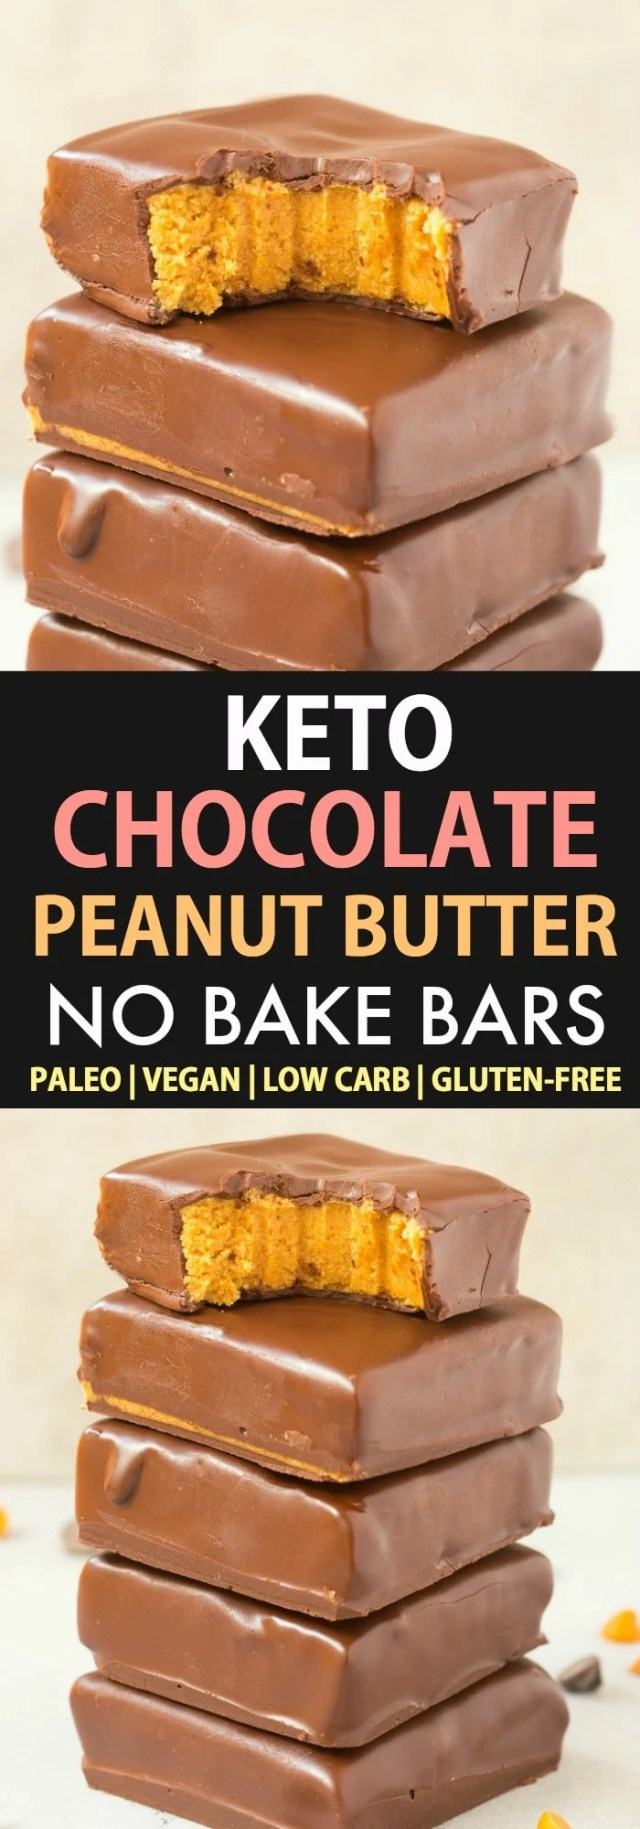 A collage featuring two images of keto chocolate peanut butter no bake bars, with the text saying Keto Chocolate Peanut Butter No Bake Bars.